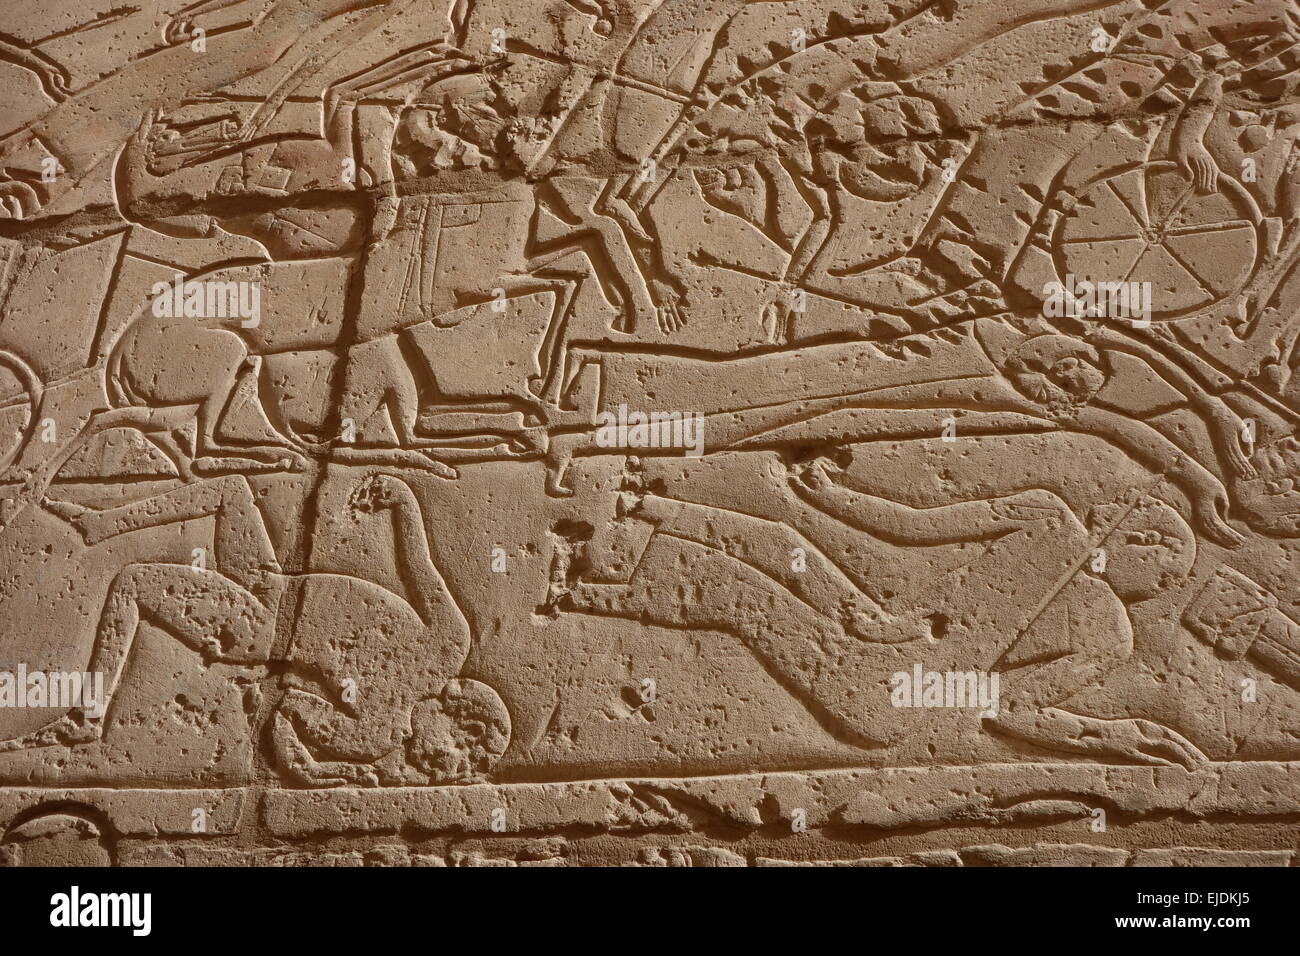 Egypt, Valley of the Kings area. Ramesseum temple showing violent battle rearing horses fallen warriors. Incised - Stock Image